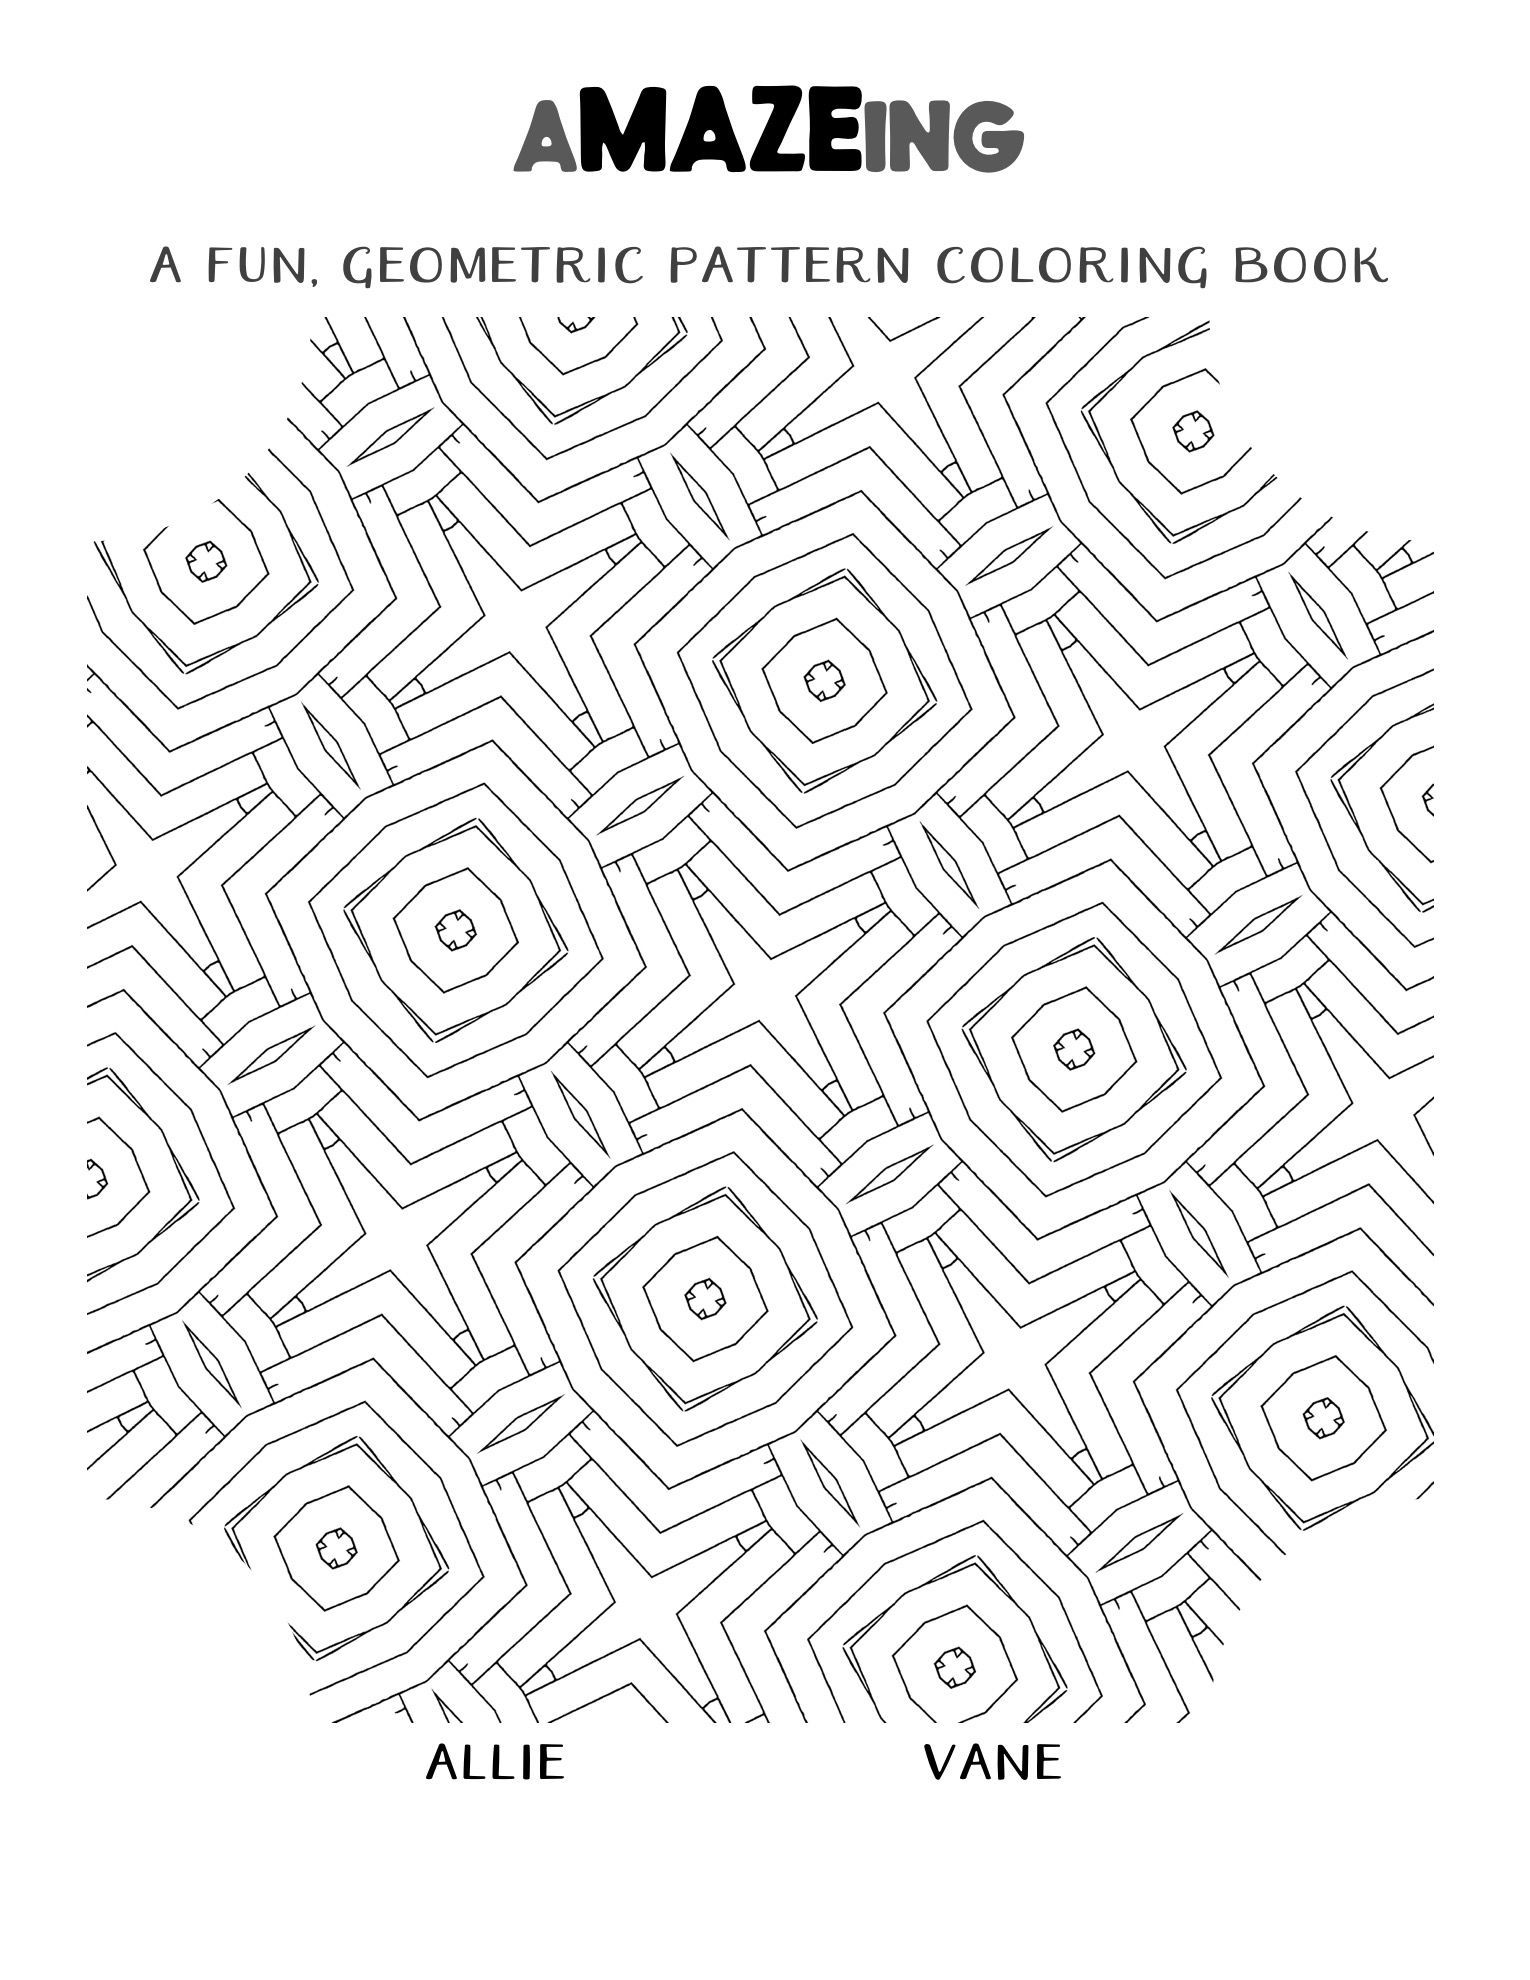 A Maze Ing A Fun Geometric Pattern Coloring Book To Print Out And Enjoy Download Yours Now And Ban Coloring Books Designs Coloring Books Geometric Printable